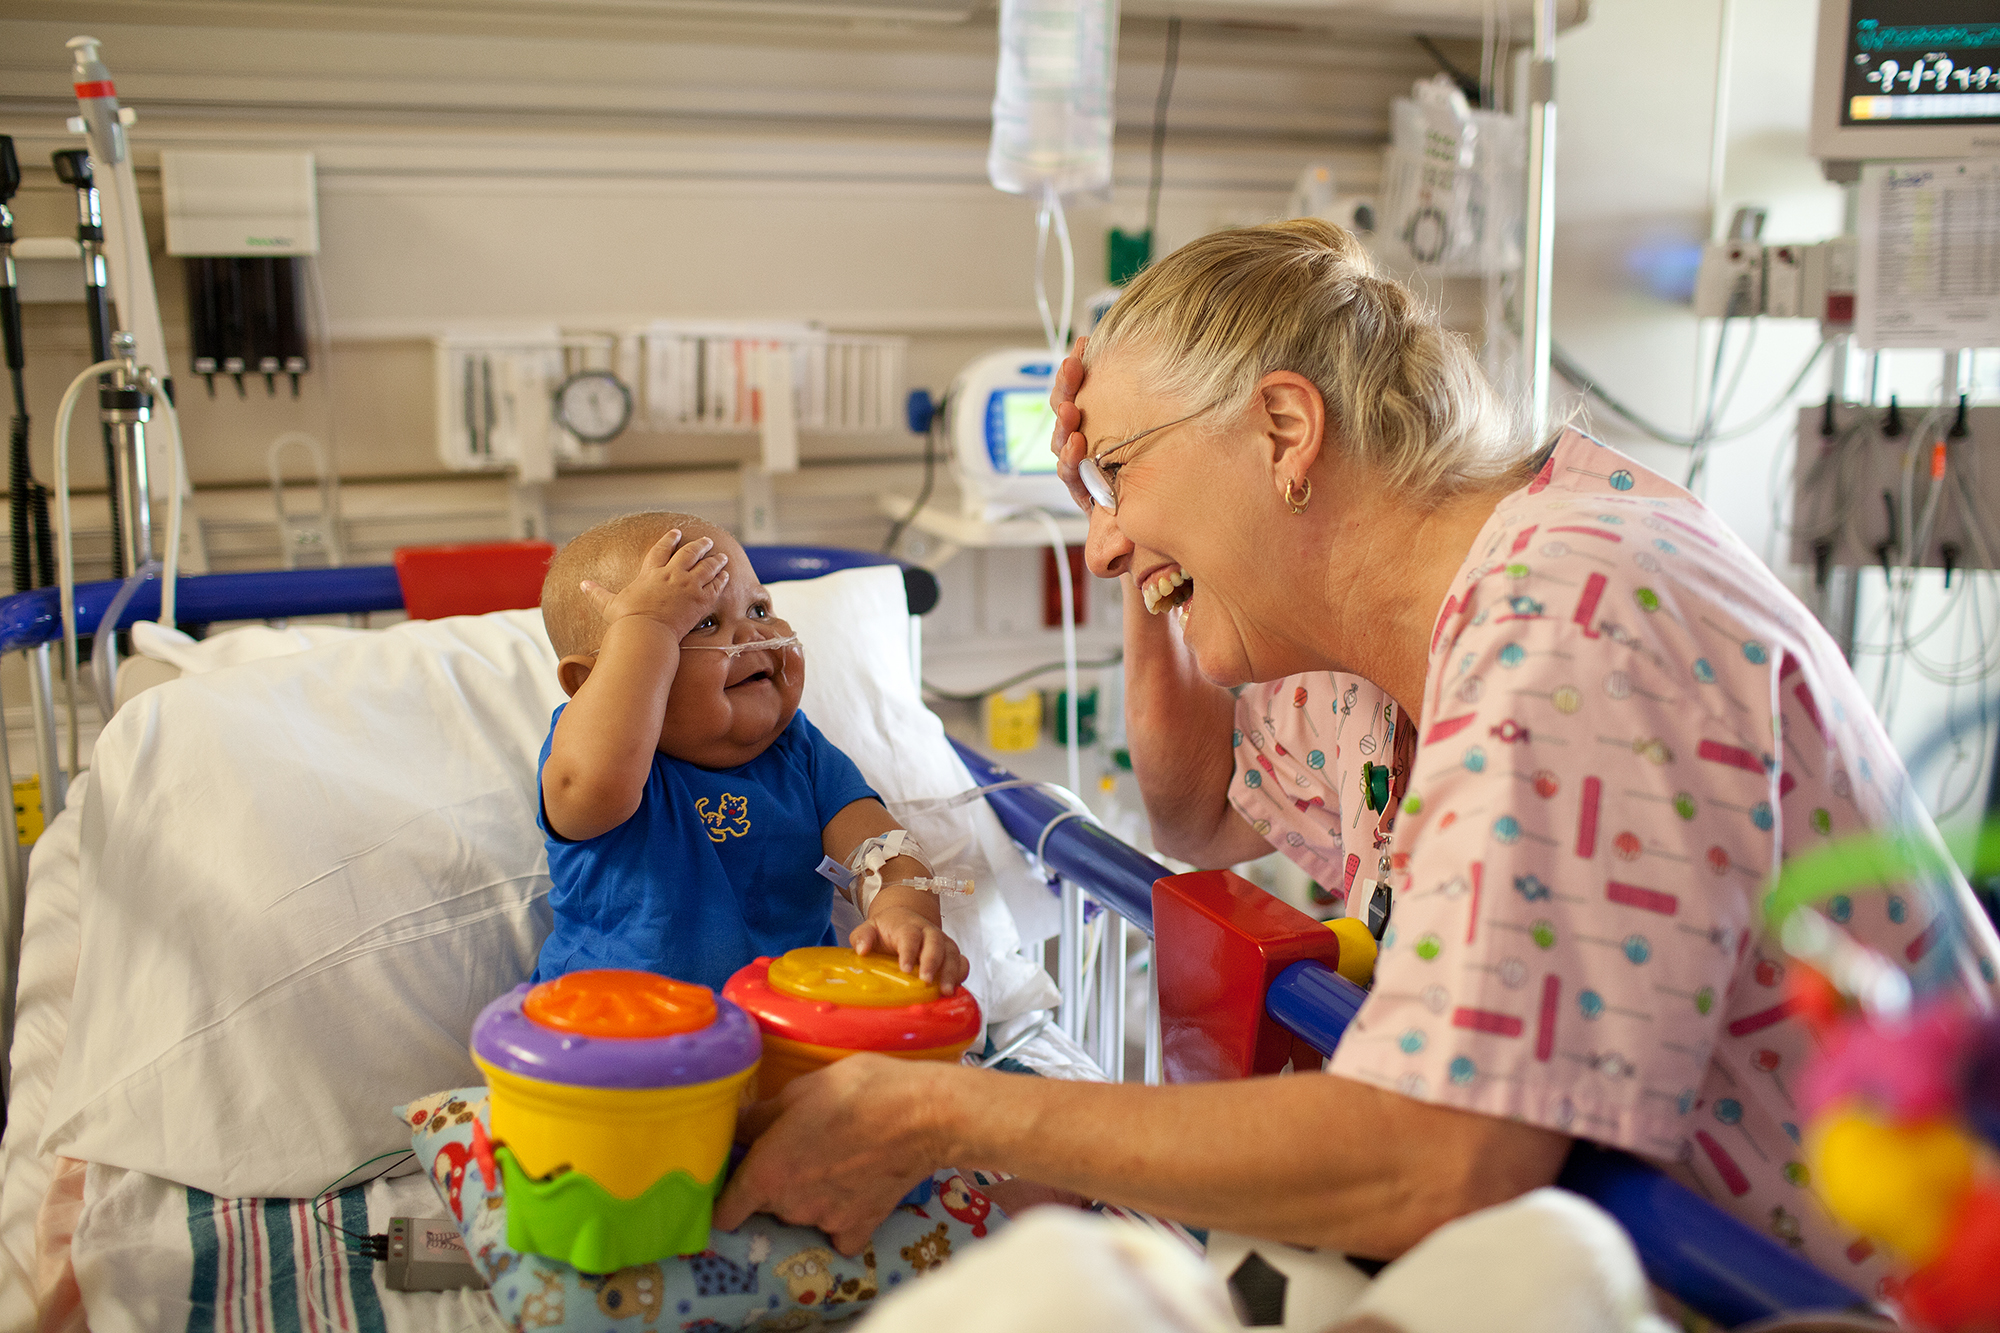 uf health shands children s hospital jumps in national rankings in its annual best children s hospitals rankings u s news ranked the following seven uf health pediatric programs among the nation s best this year